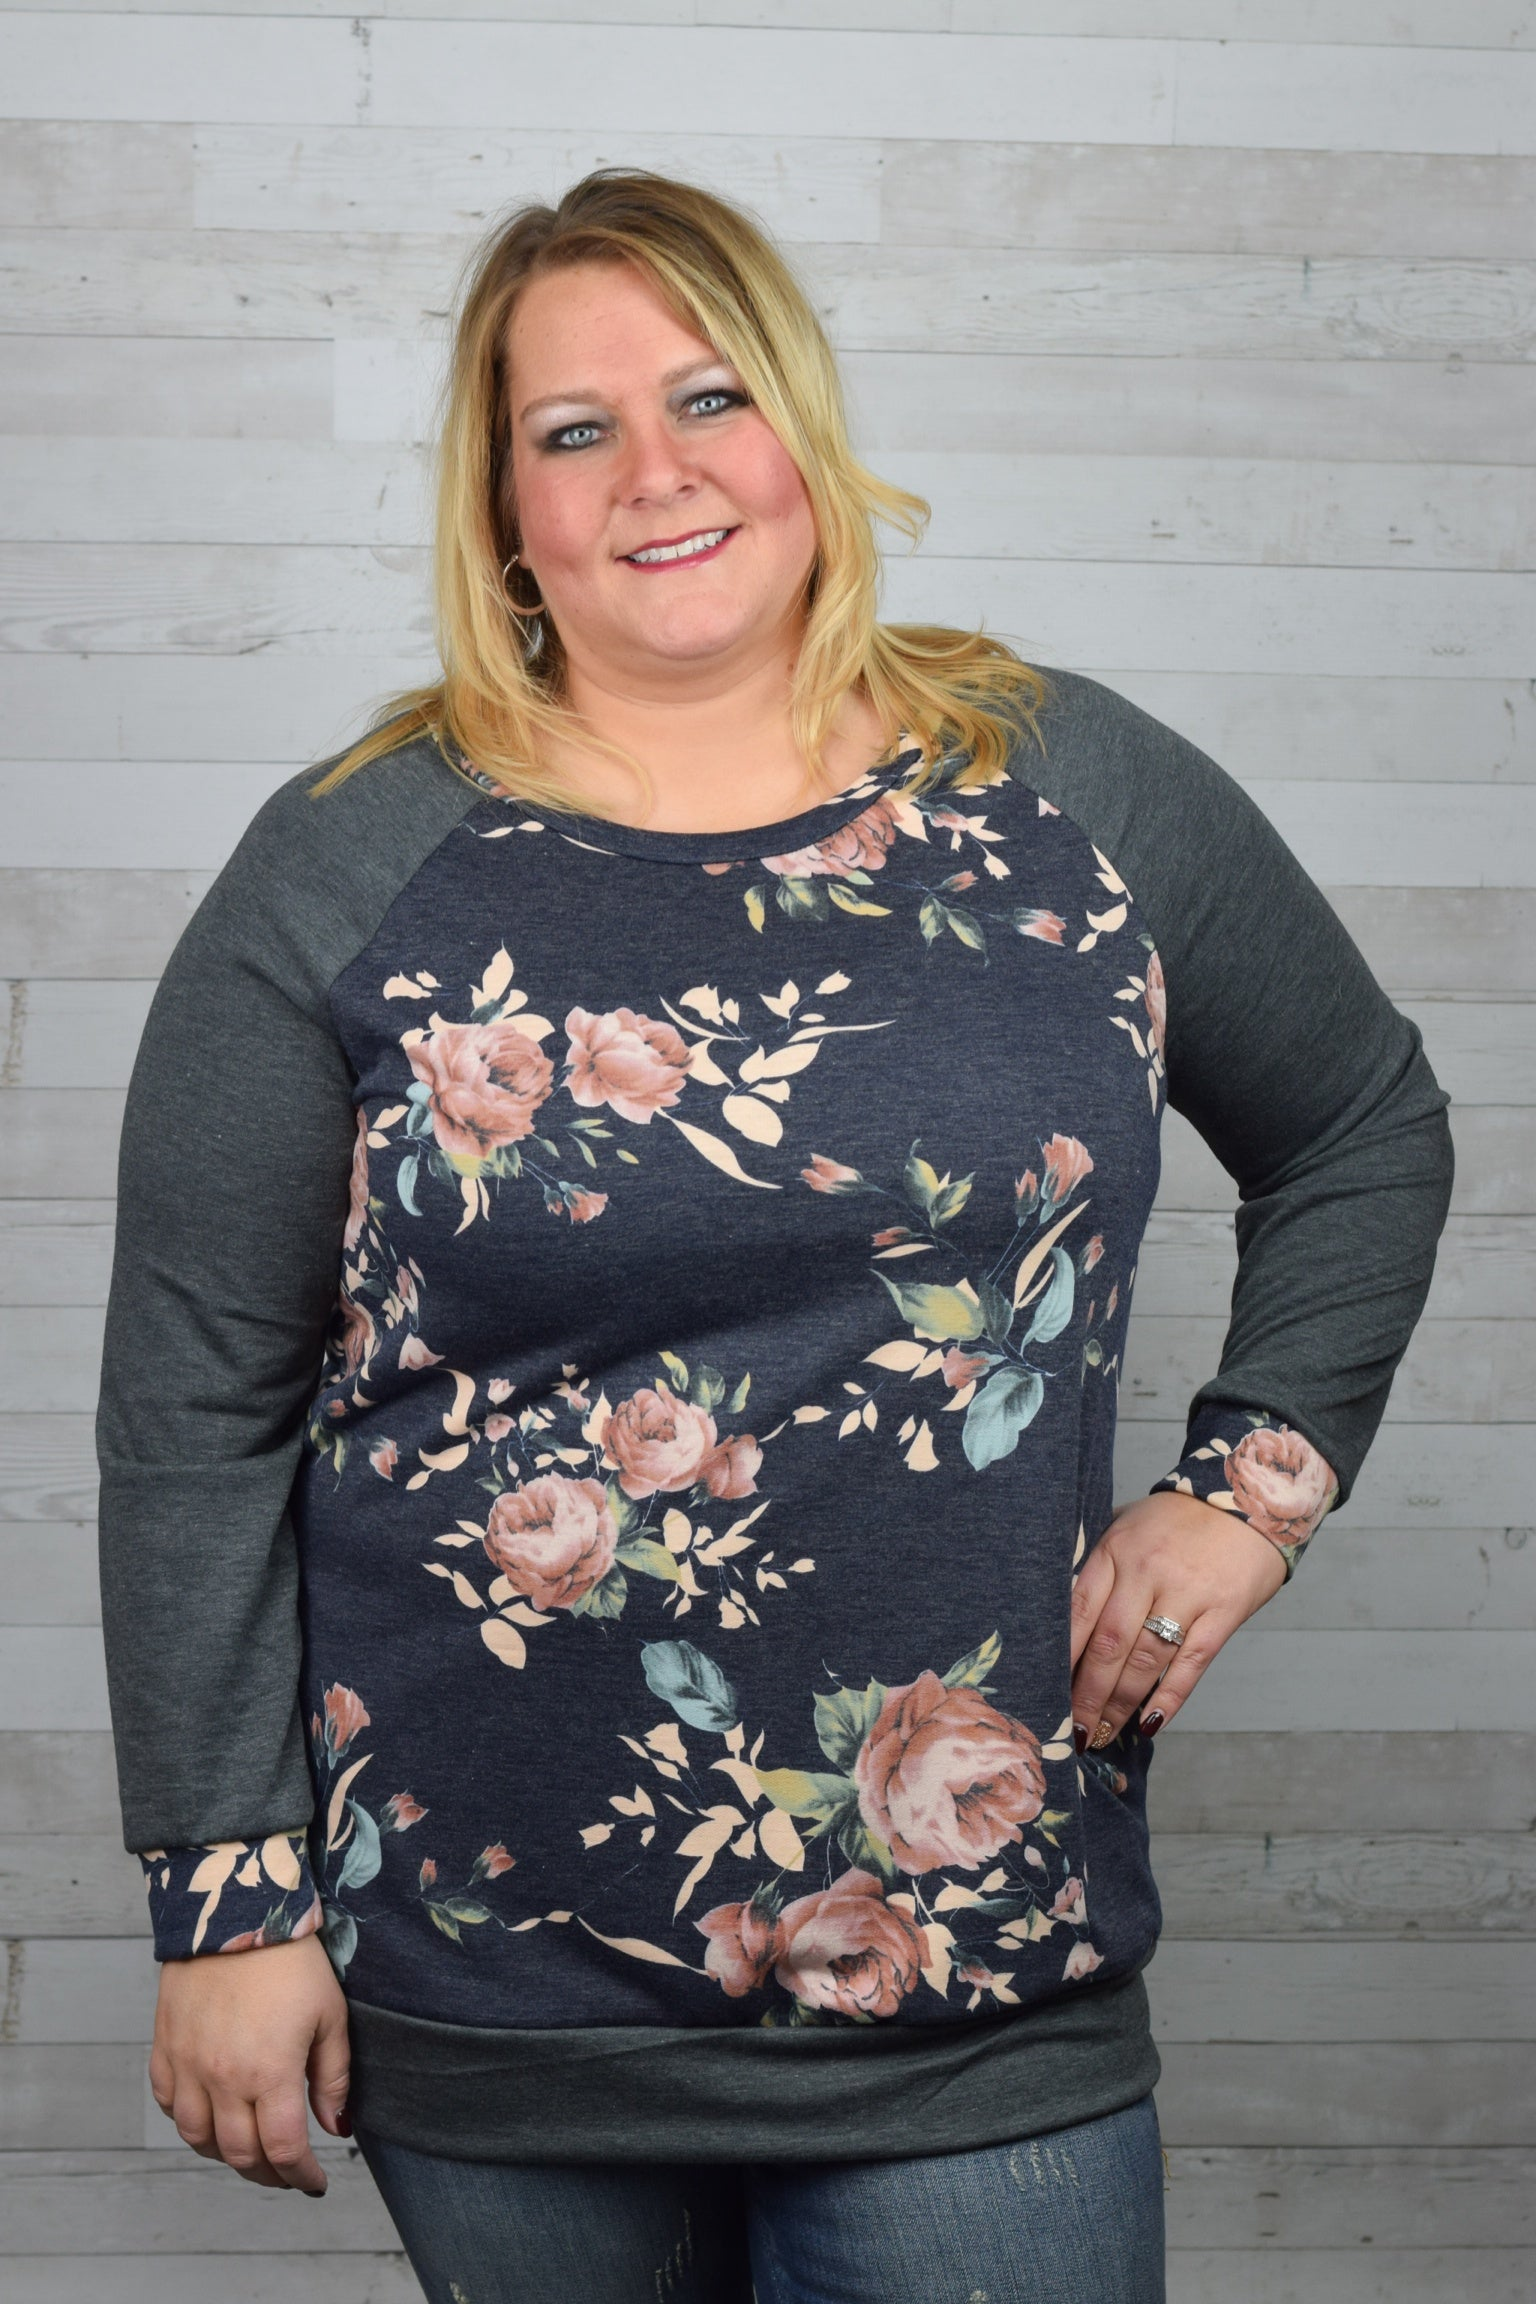 Full of Love Floral Top - Plus